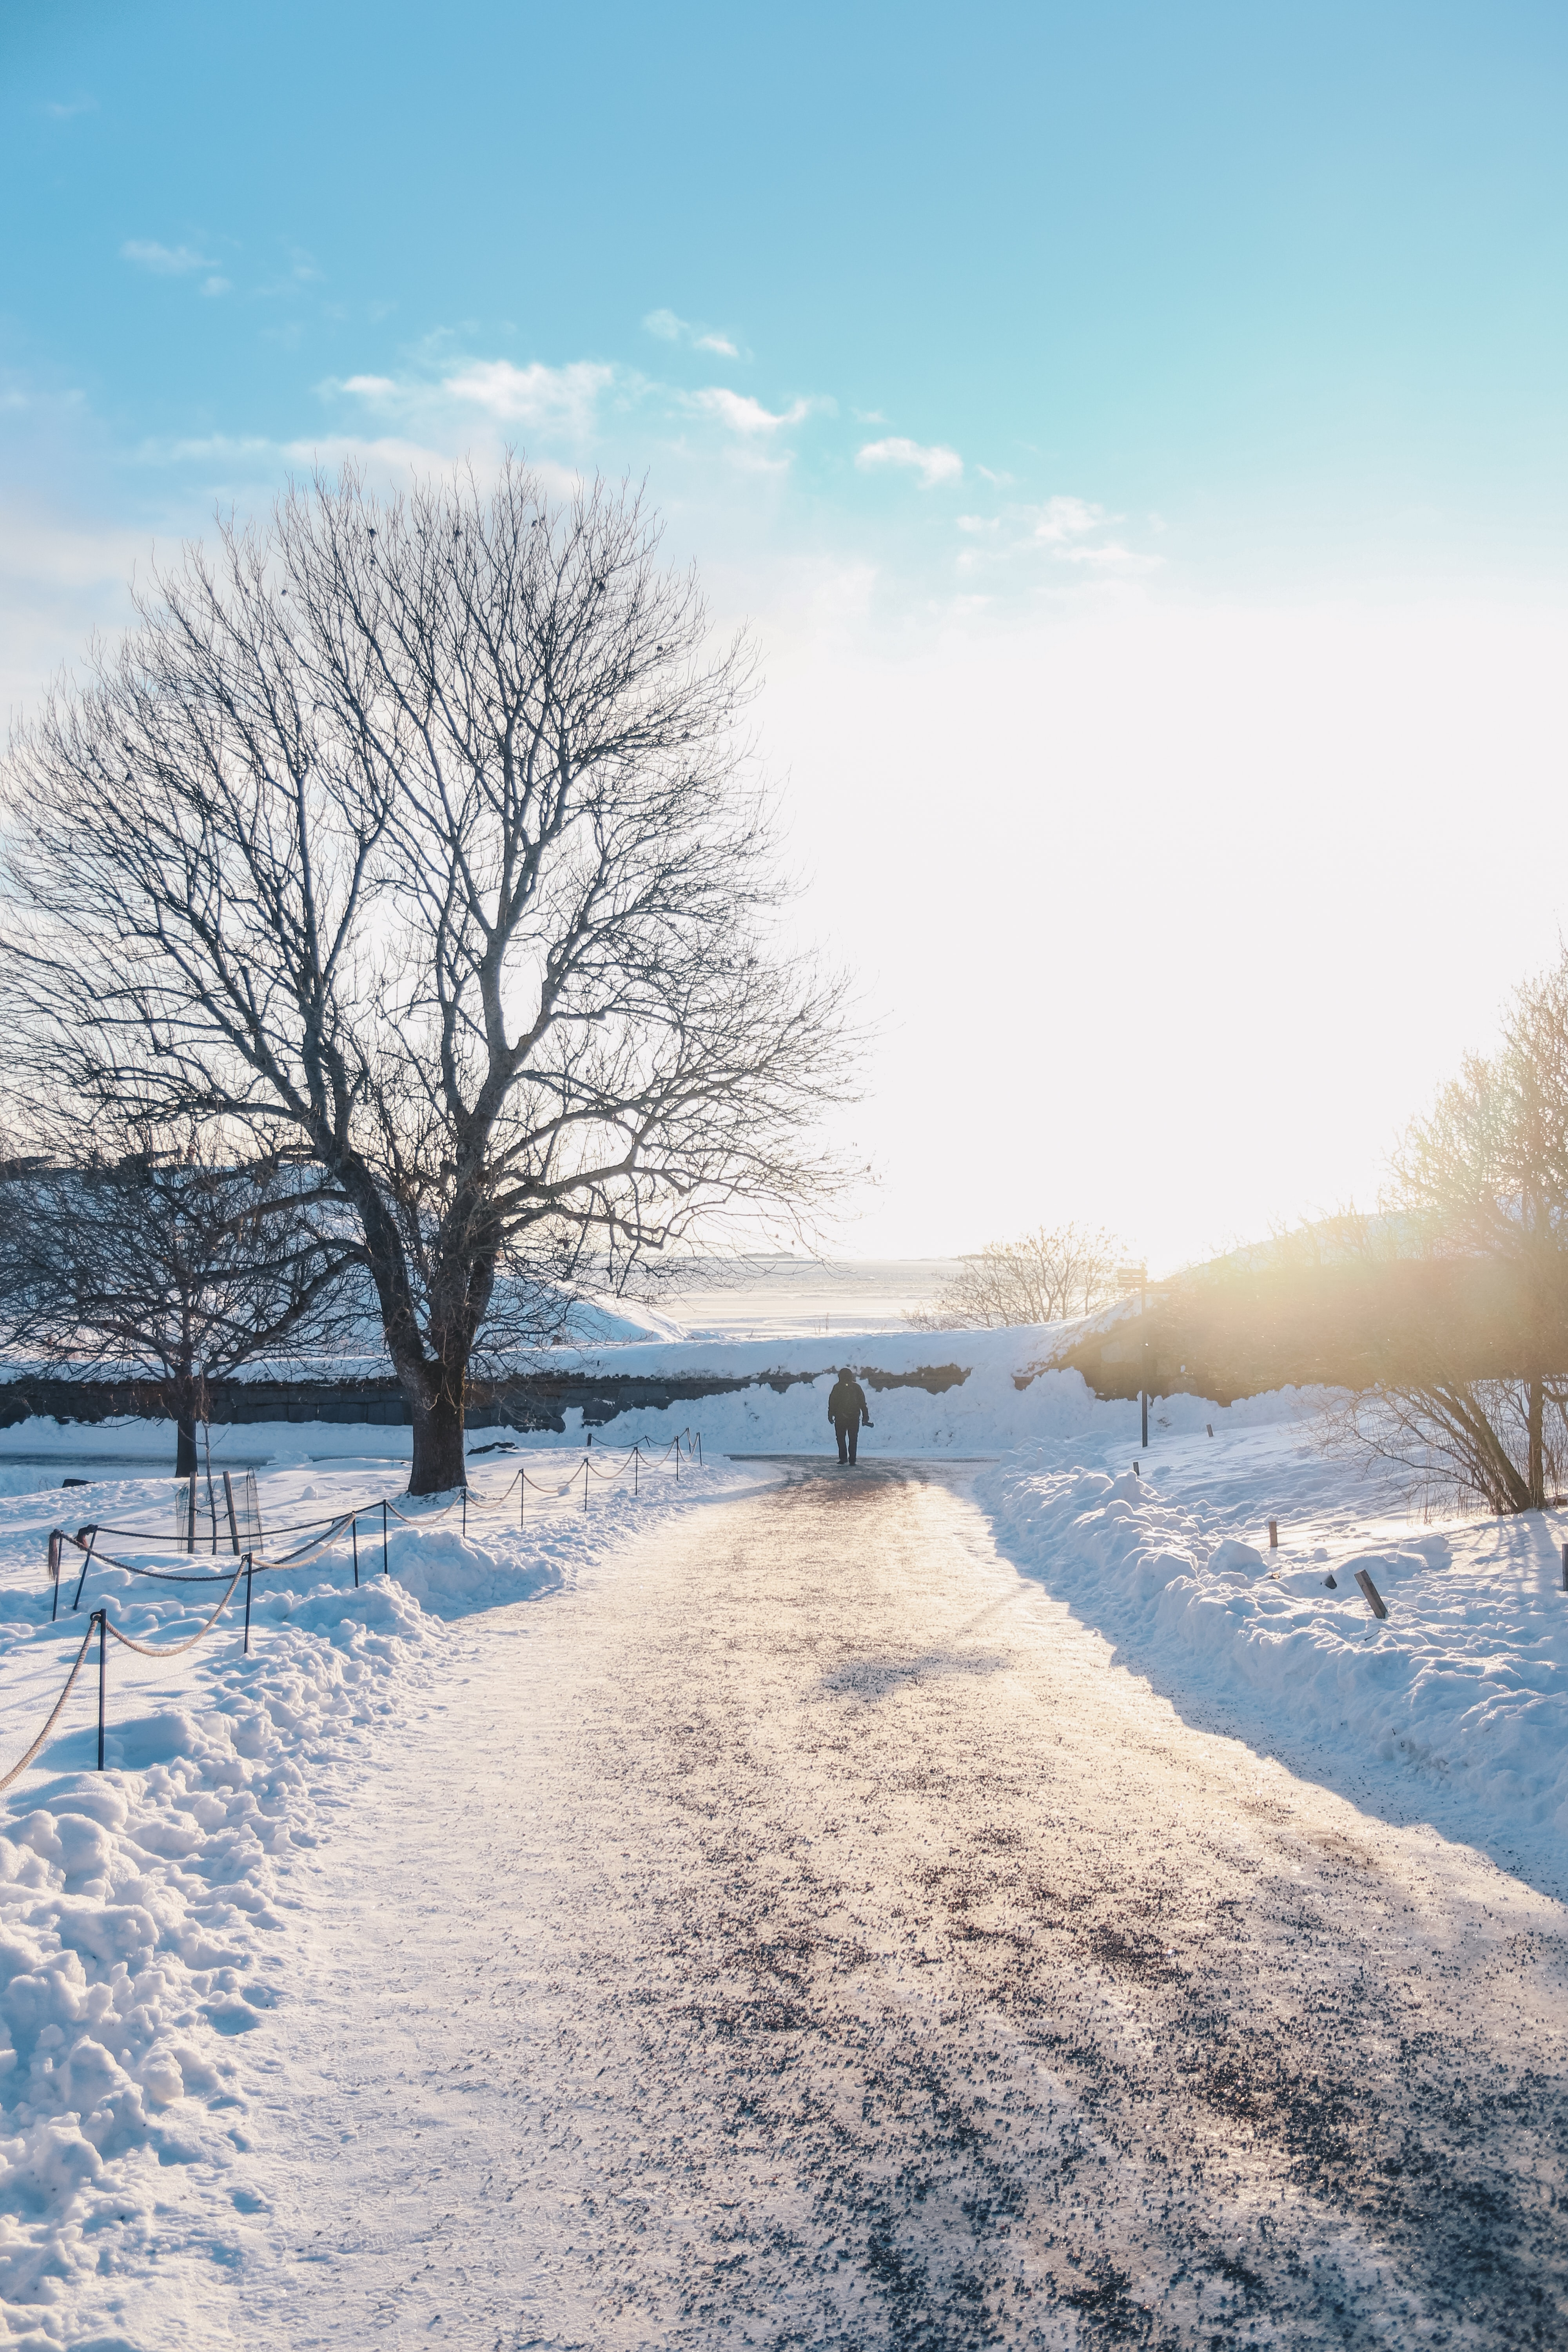 person walking on a snowy path during day time